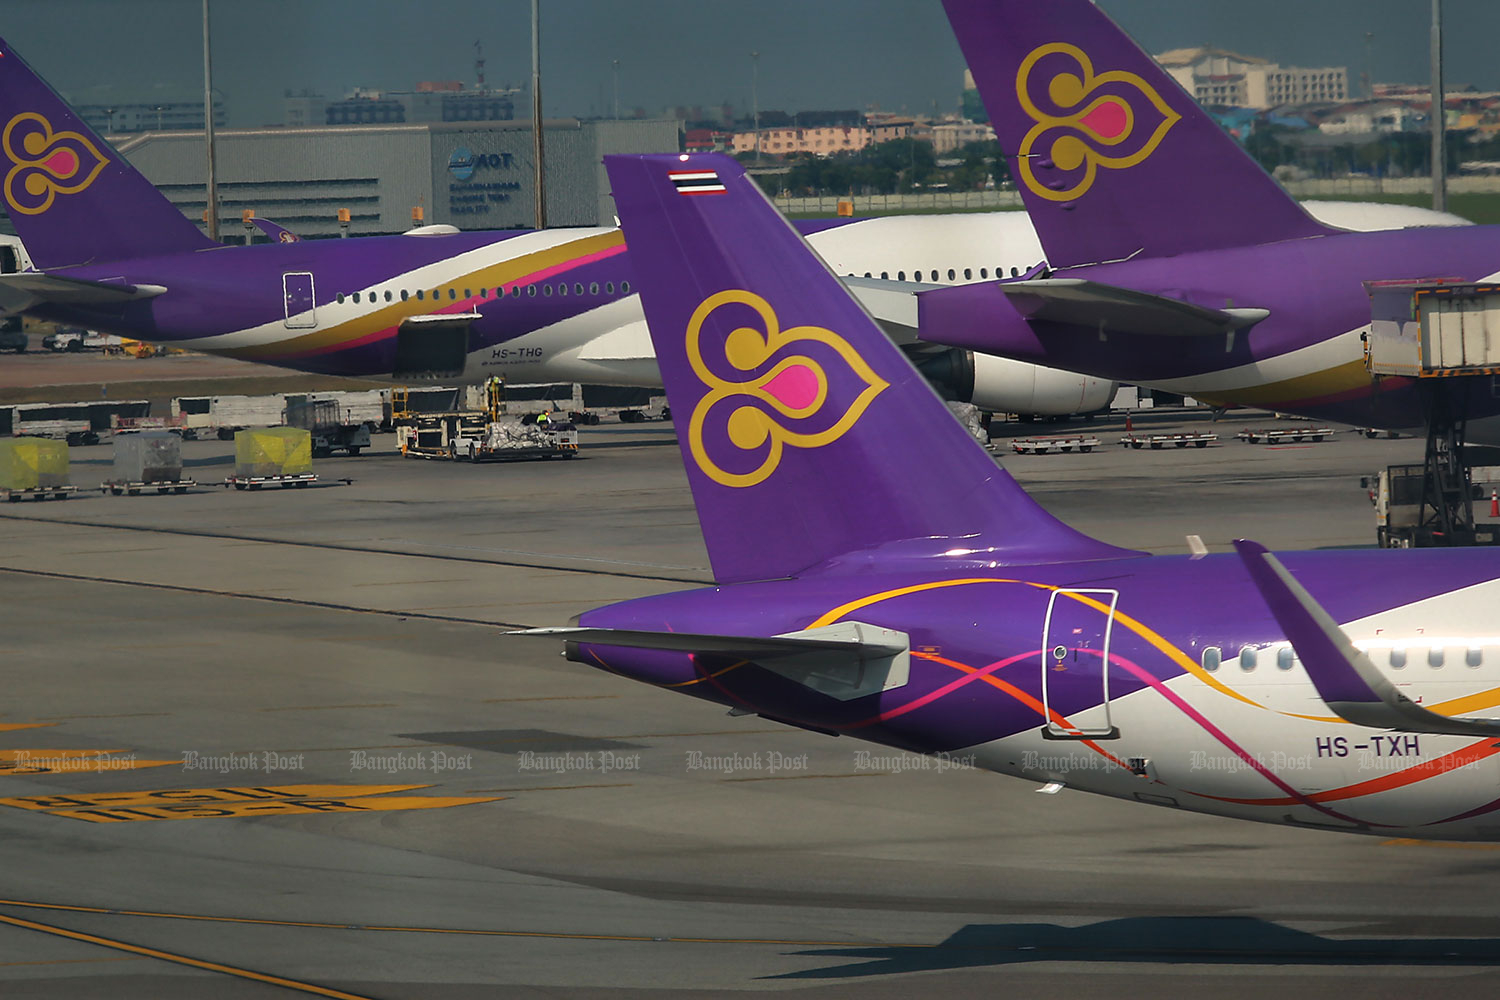 THAI jets are stationed at Suvarnabhumi airport. The nation's aviation sector slumped last year in the stock market, as share prices declined. (Photo by Somchai Poomlard)